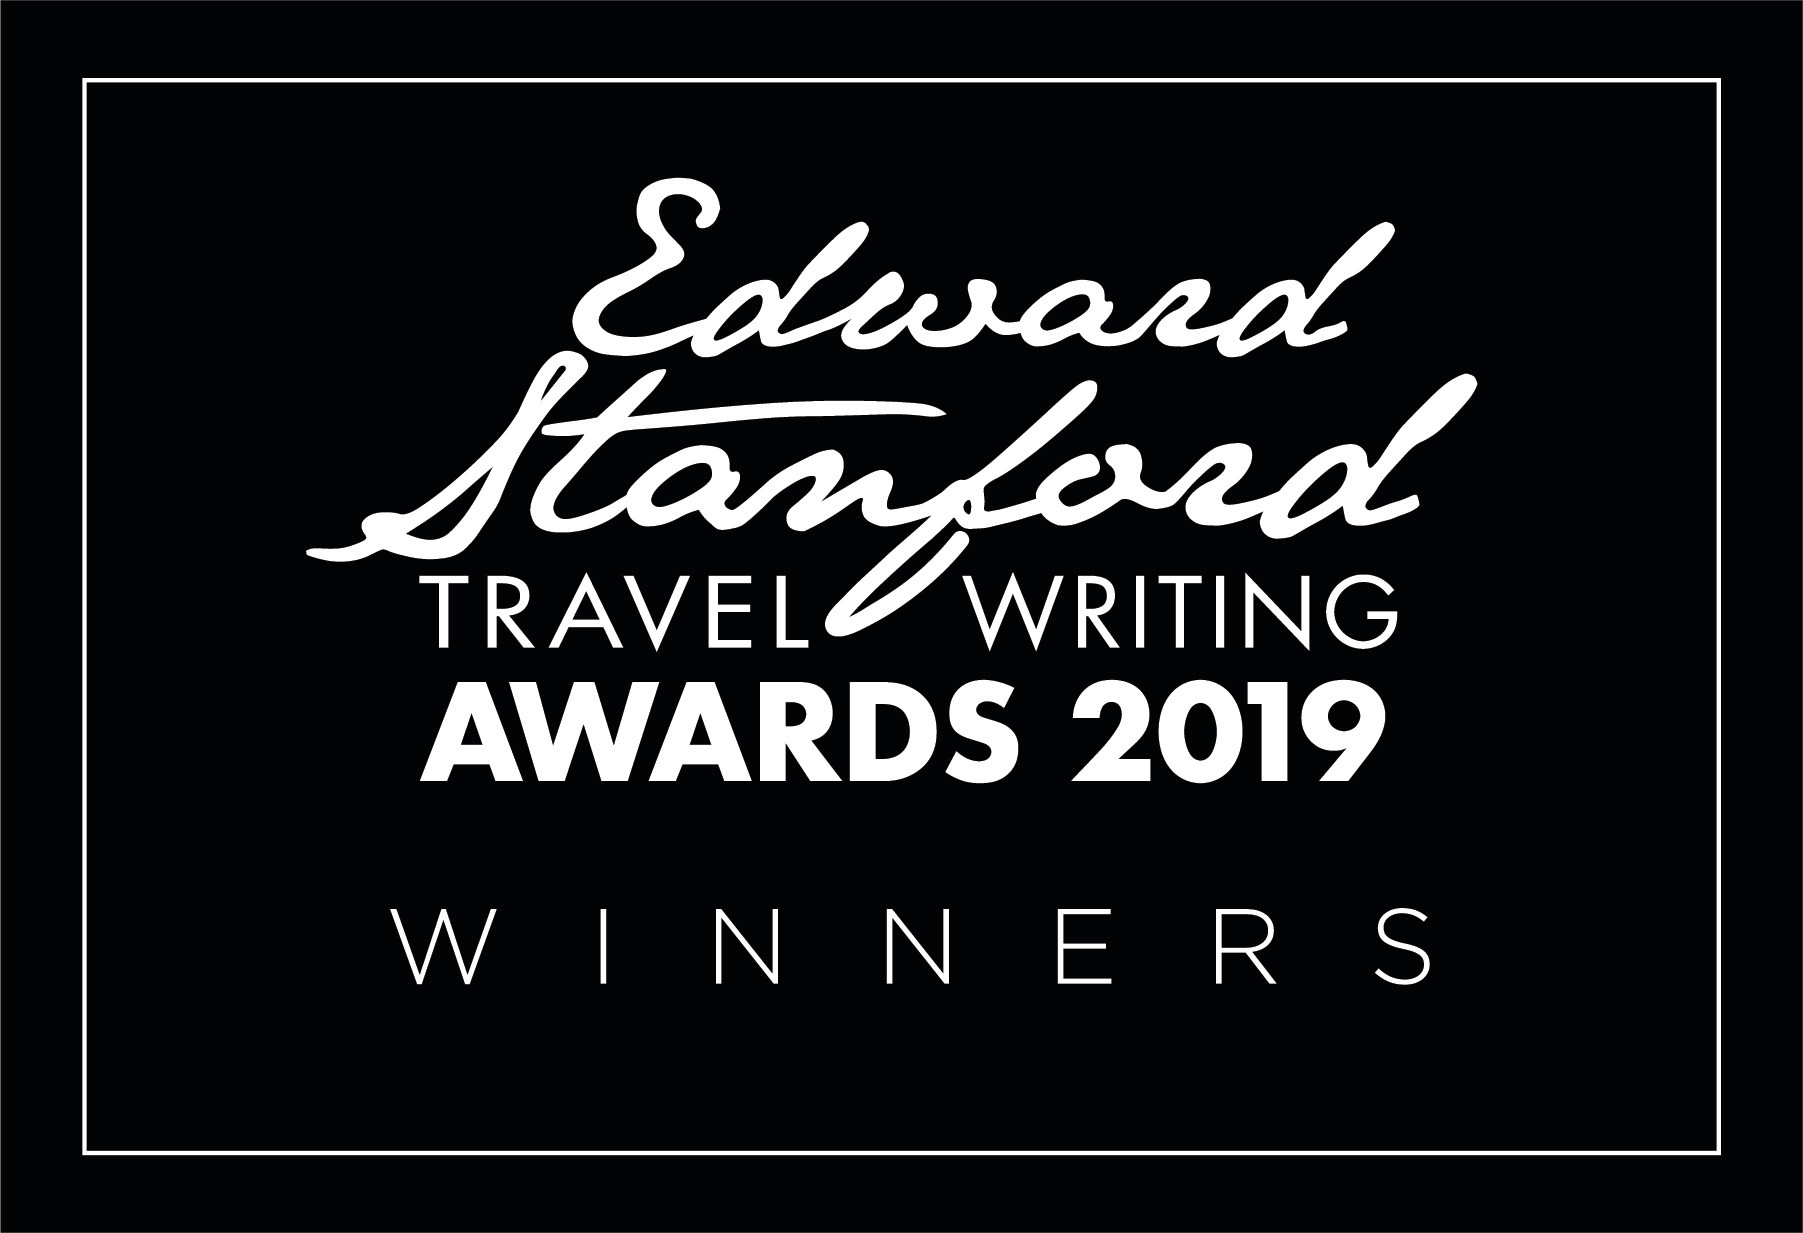 Winners of the Edward Stanford Travel Writing Awards 2019